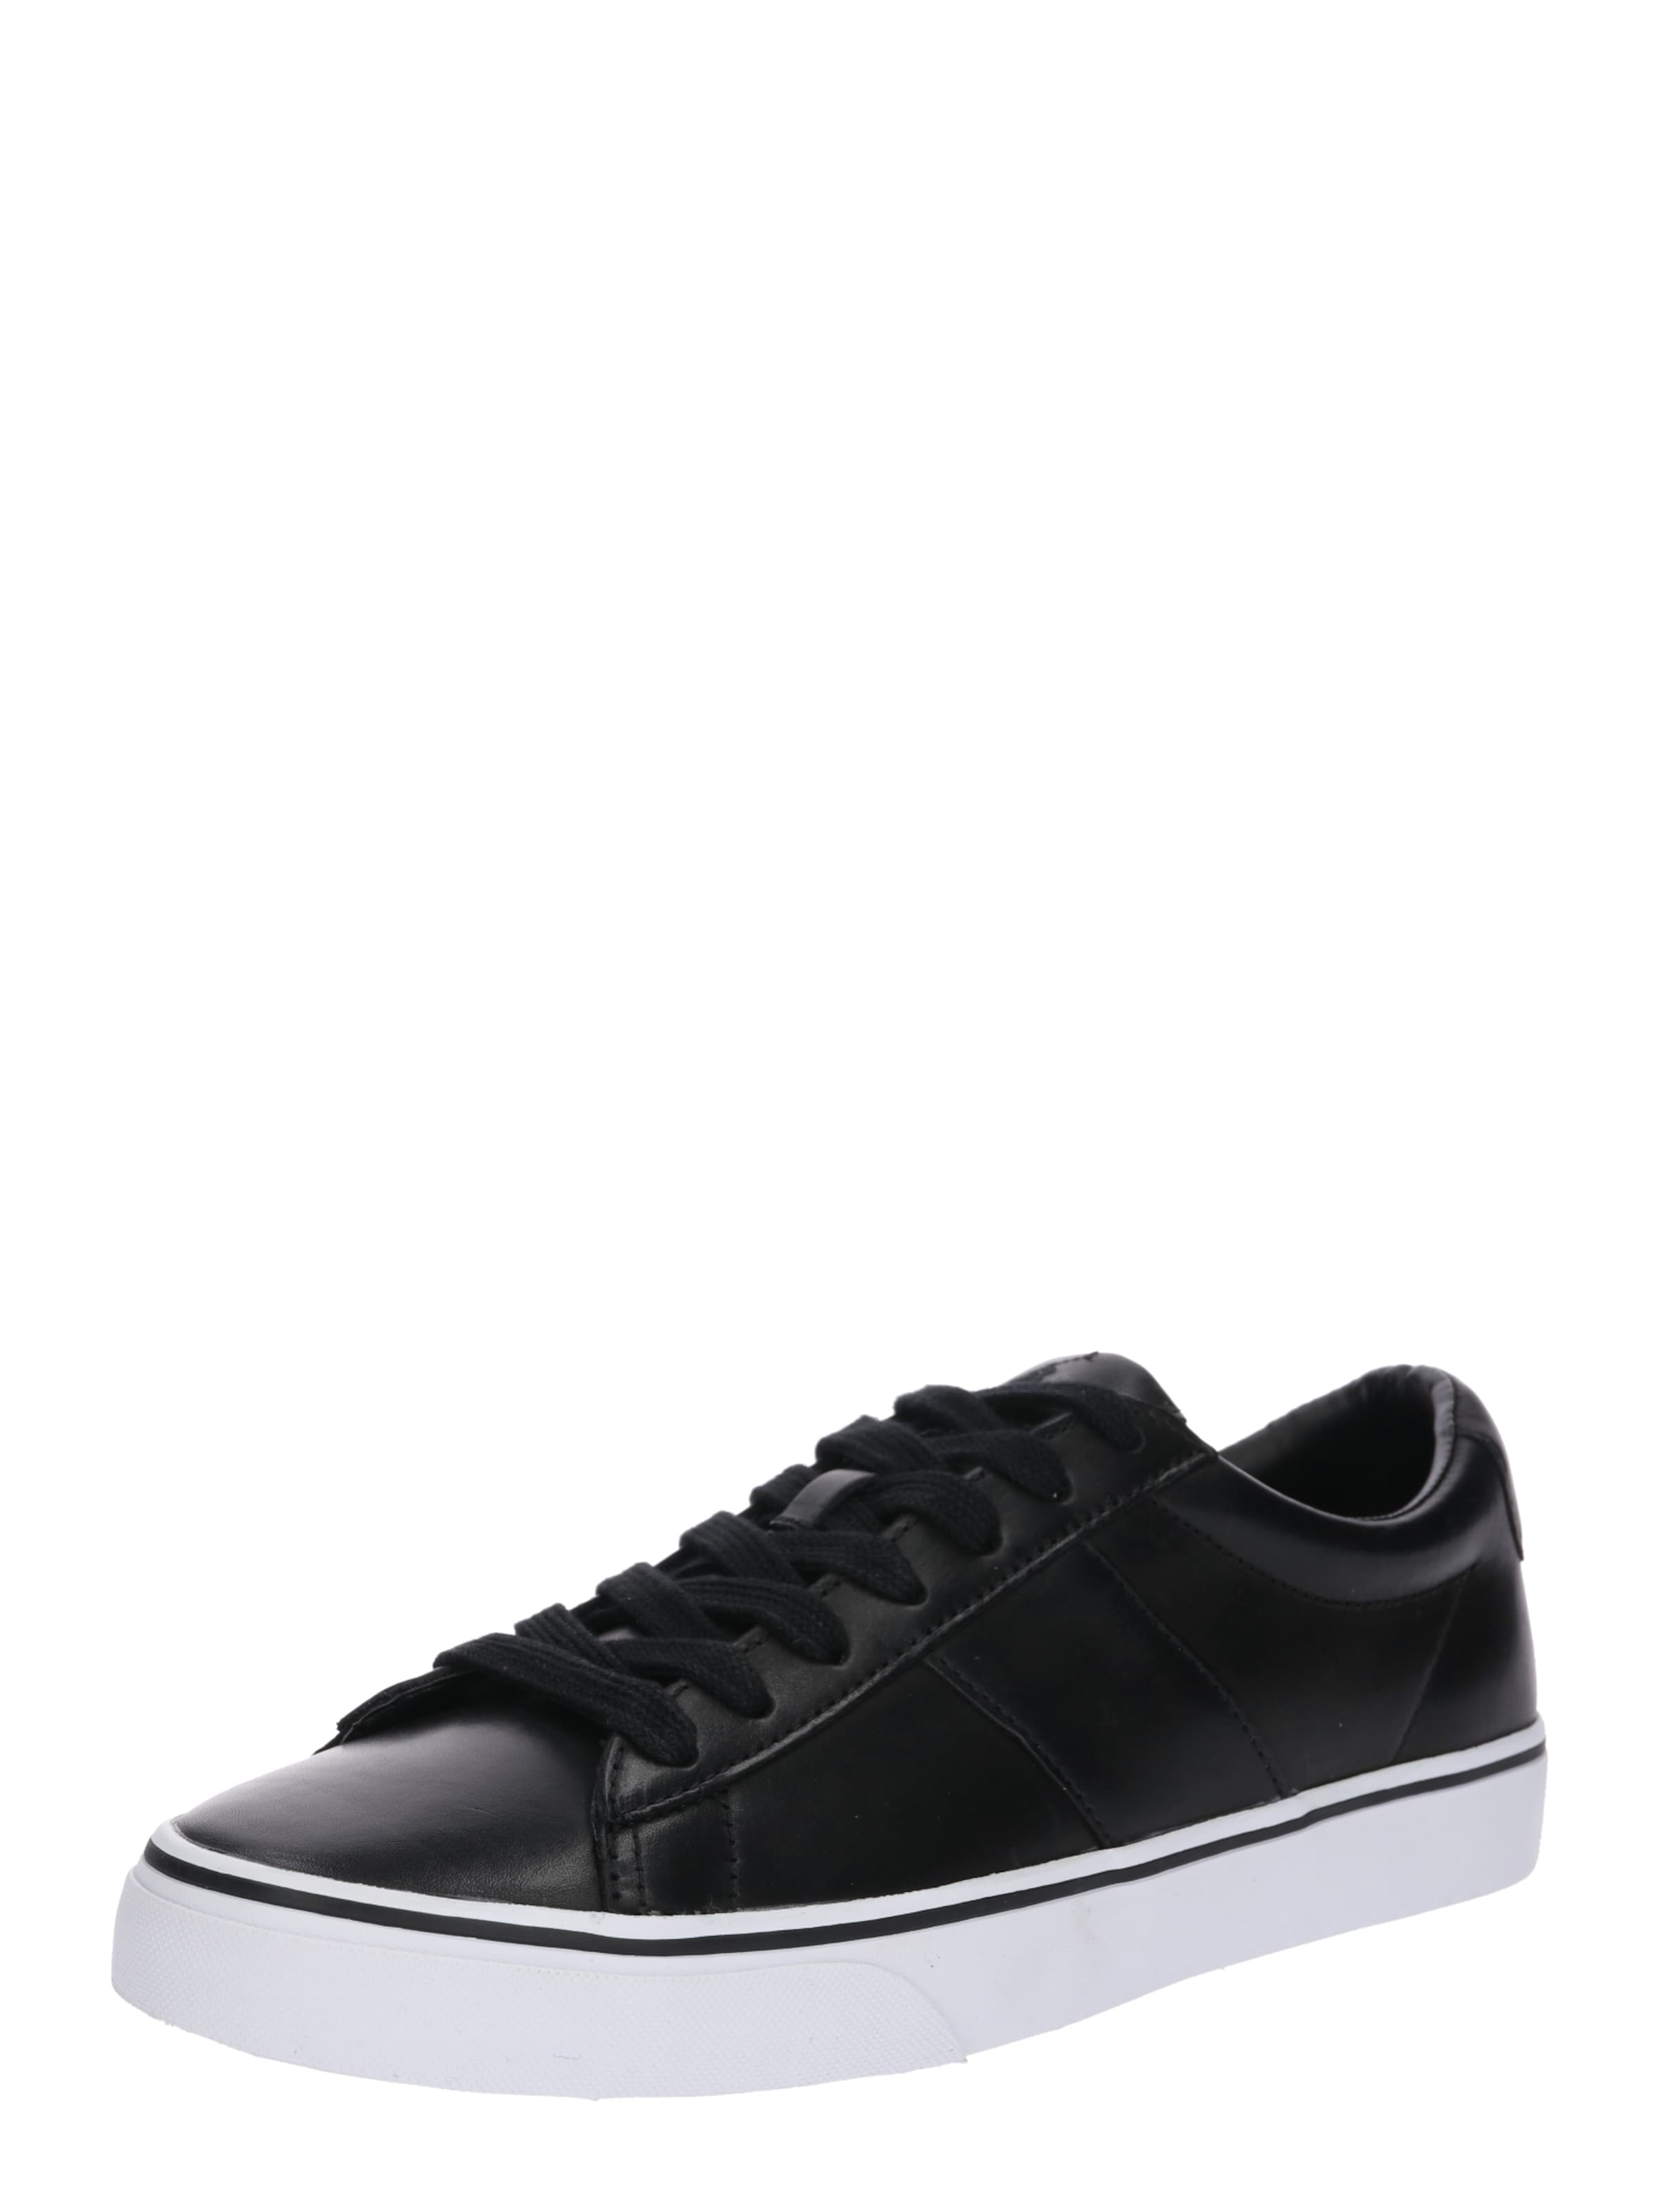 Ralph Sneaker In Leather' Nachtblau 'sayer Lauren Polo MqSzpUV